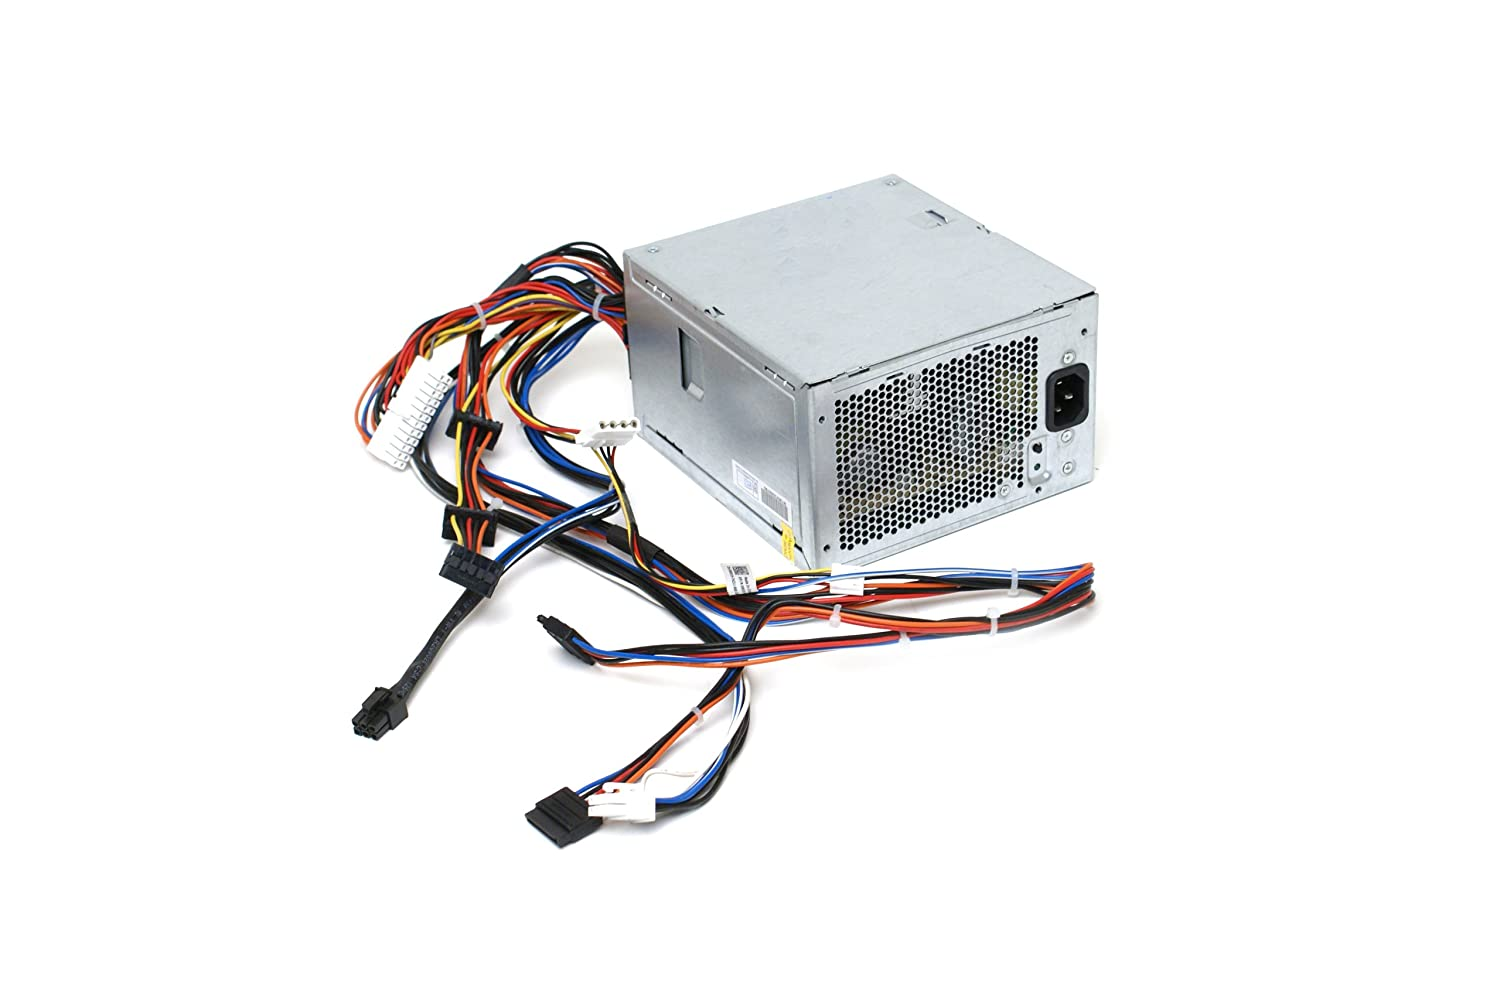 7199xQy8W L._SL1500_ amazon com genuine dell 525w 6w6m1 m821j power supply unit psu Dell Precision T3600 at crackthecode.co